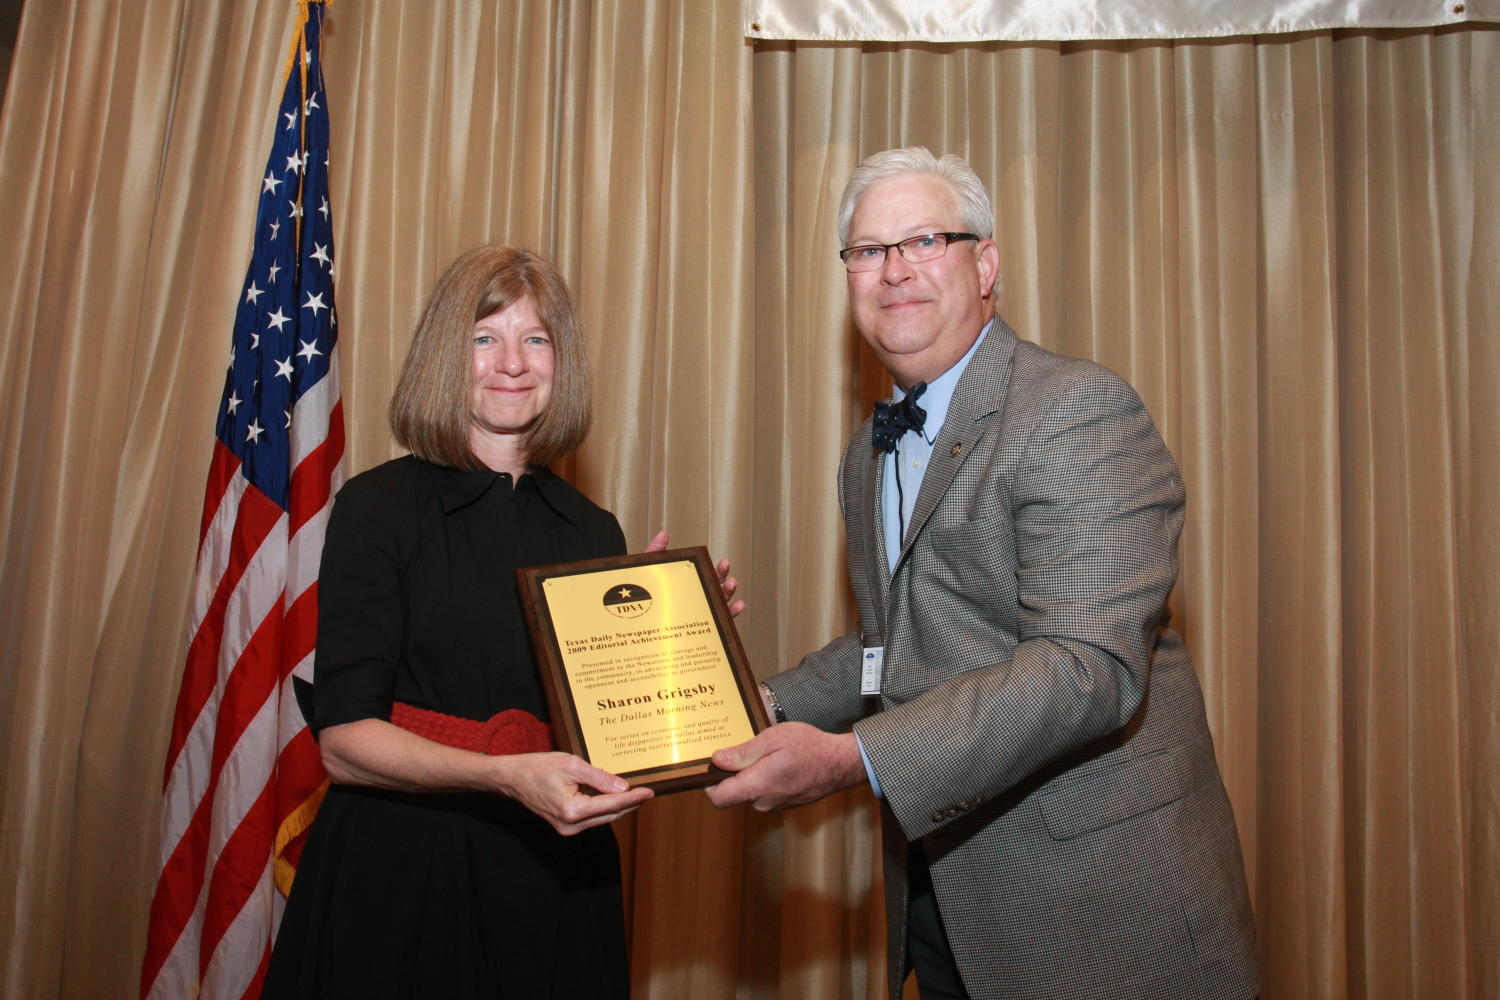 "[Sharon Grigsby receiving award at TDNA conference], Photograph of Sharon Grigsby (left) receiving an award from Patrick Canty (right) during the 2010 Texas Daily Newspaper Association annual meeting held in Houston, Texas. The award reads, ""Texas Daily Newspaper Association 2009 Editorial Achievement Award. Presented in recognition of courage and commitment to the Newsroom and leadership in the community, in advocating and pursuing openness and accessibility to government. Sharon Grigsby, The Dallas Morning News. For series on economic and quality of life disparities in Dallas aimed at correcting institutionalized injustice."","